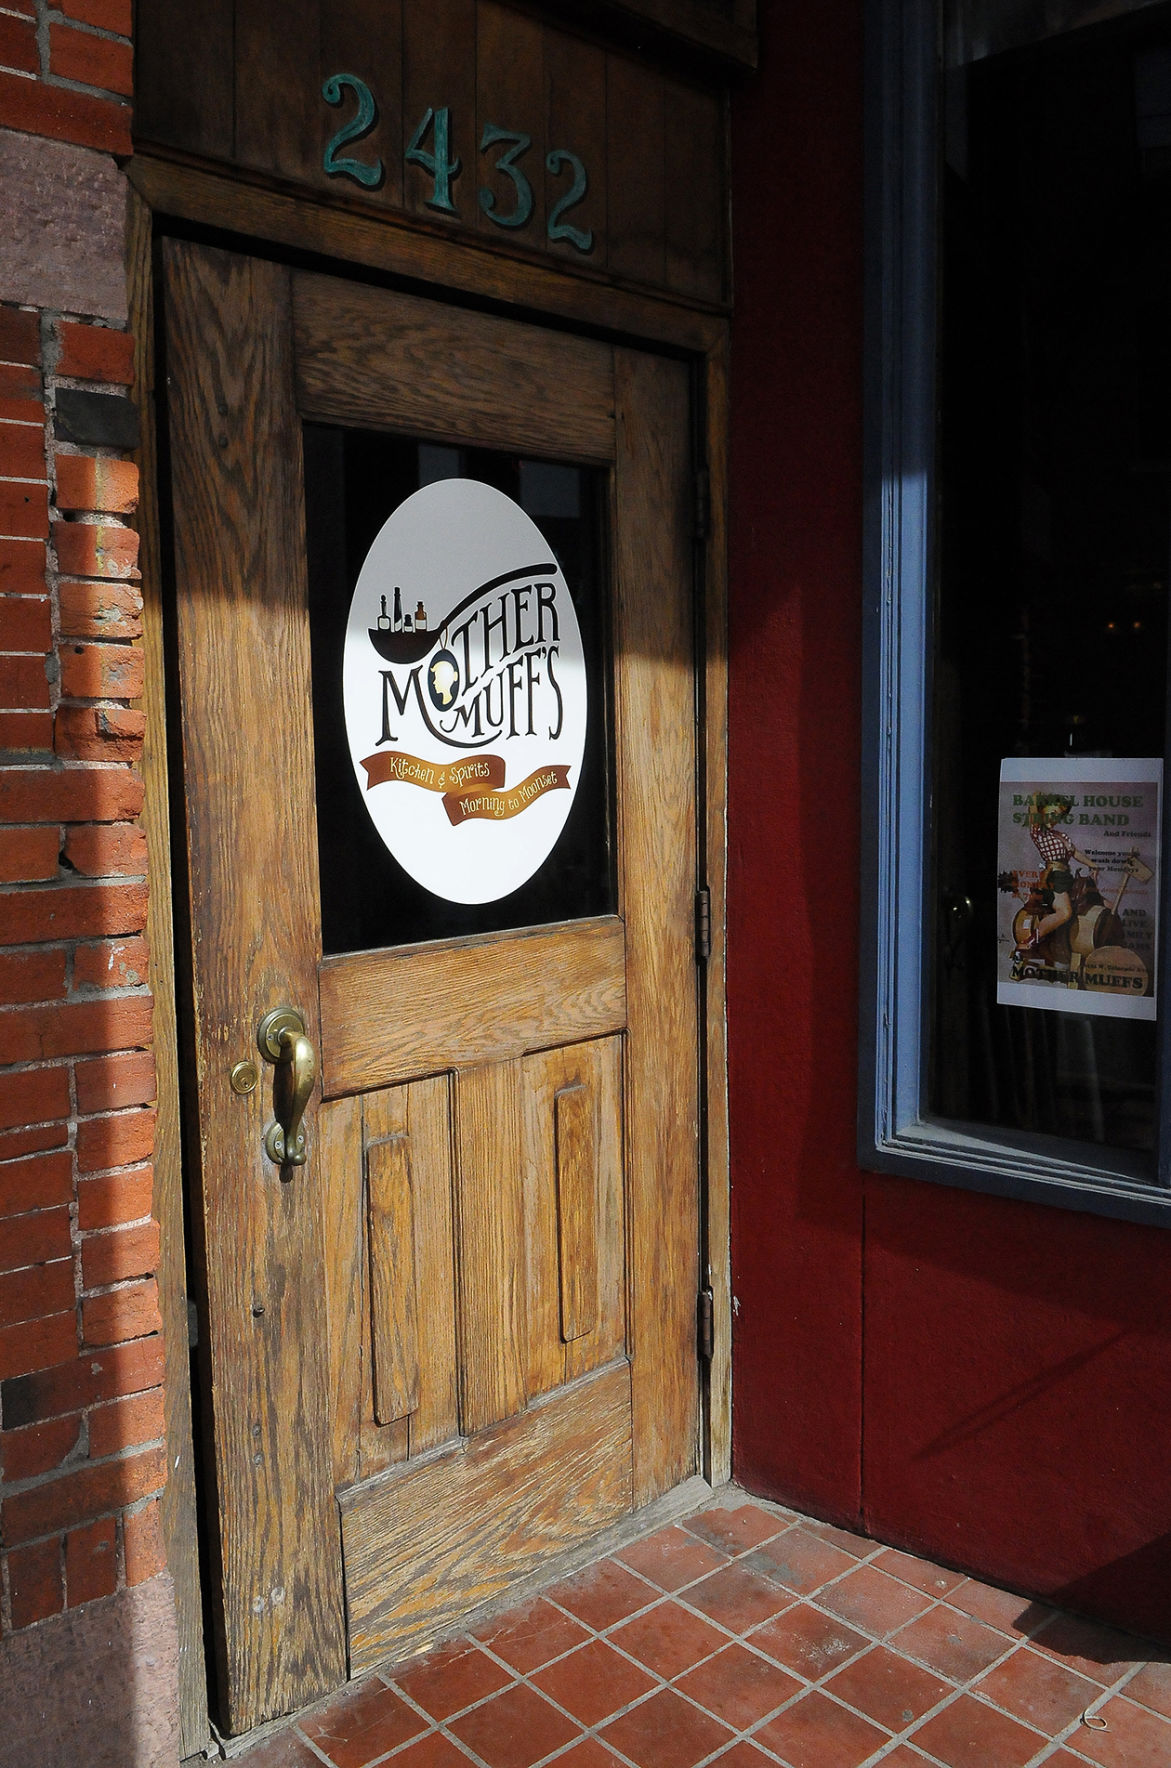 Dining review: Mother Muff's serves up distinctive fare